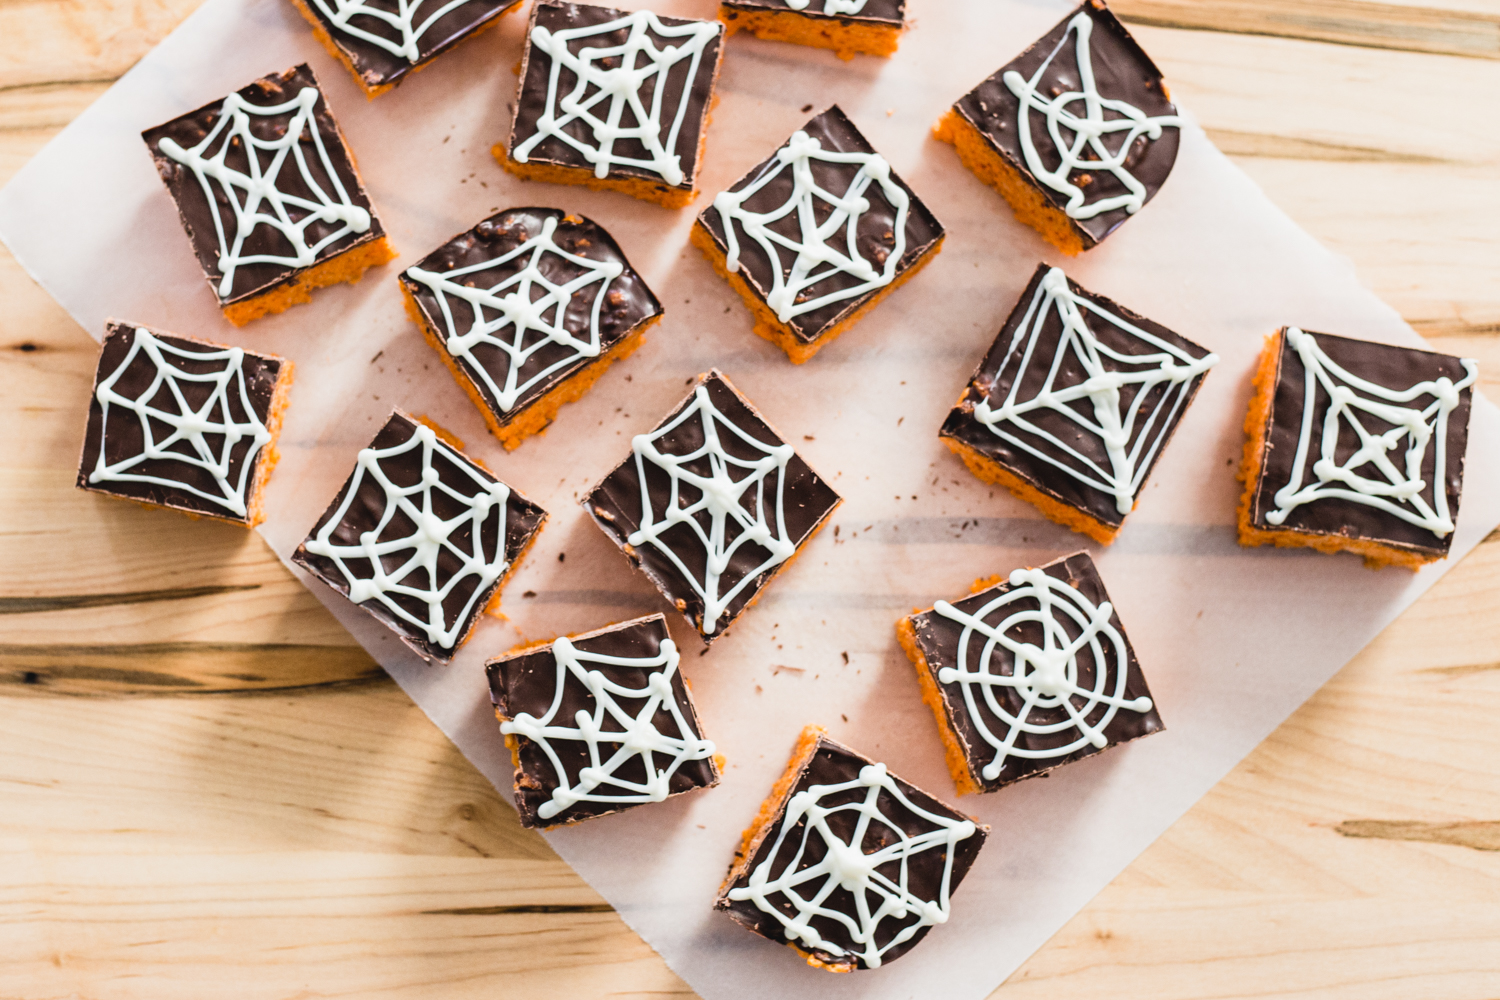 Spider Web Cereal Treats from Jelly Toast Blog